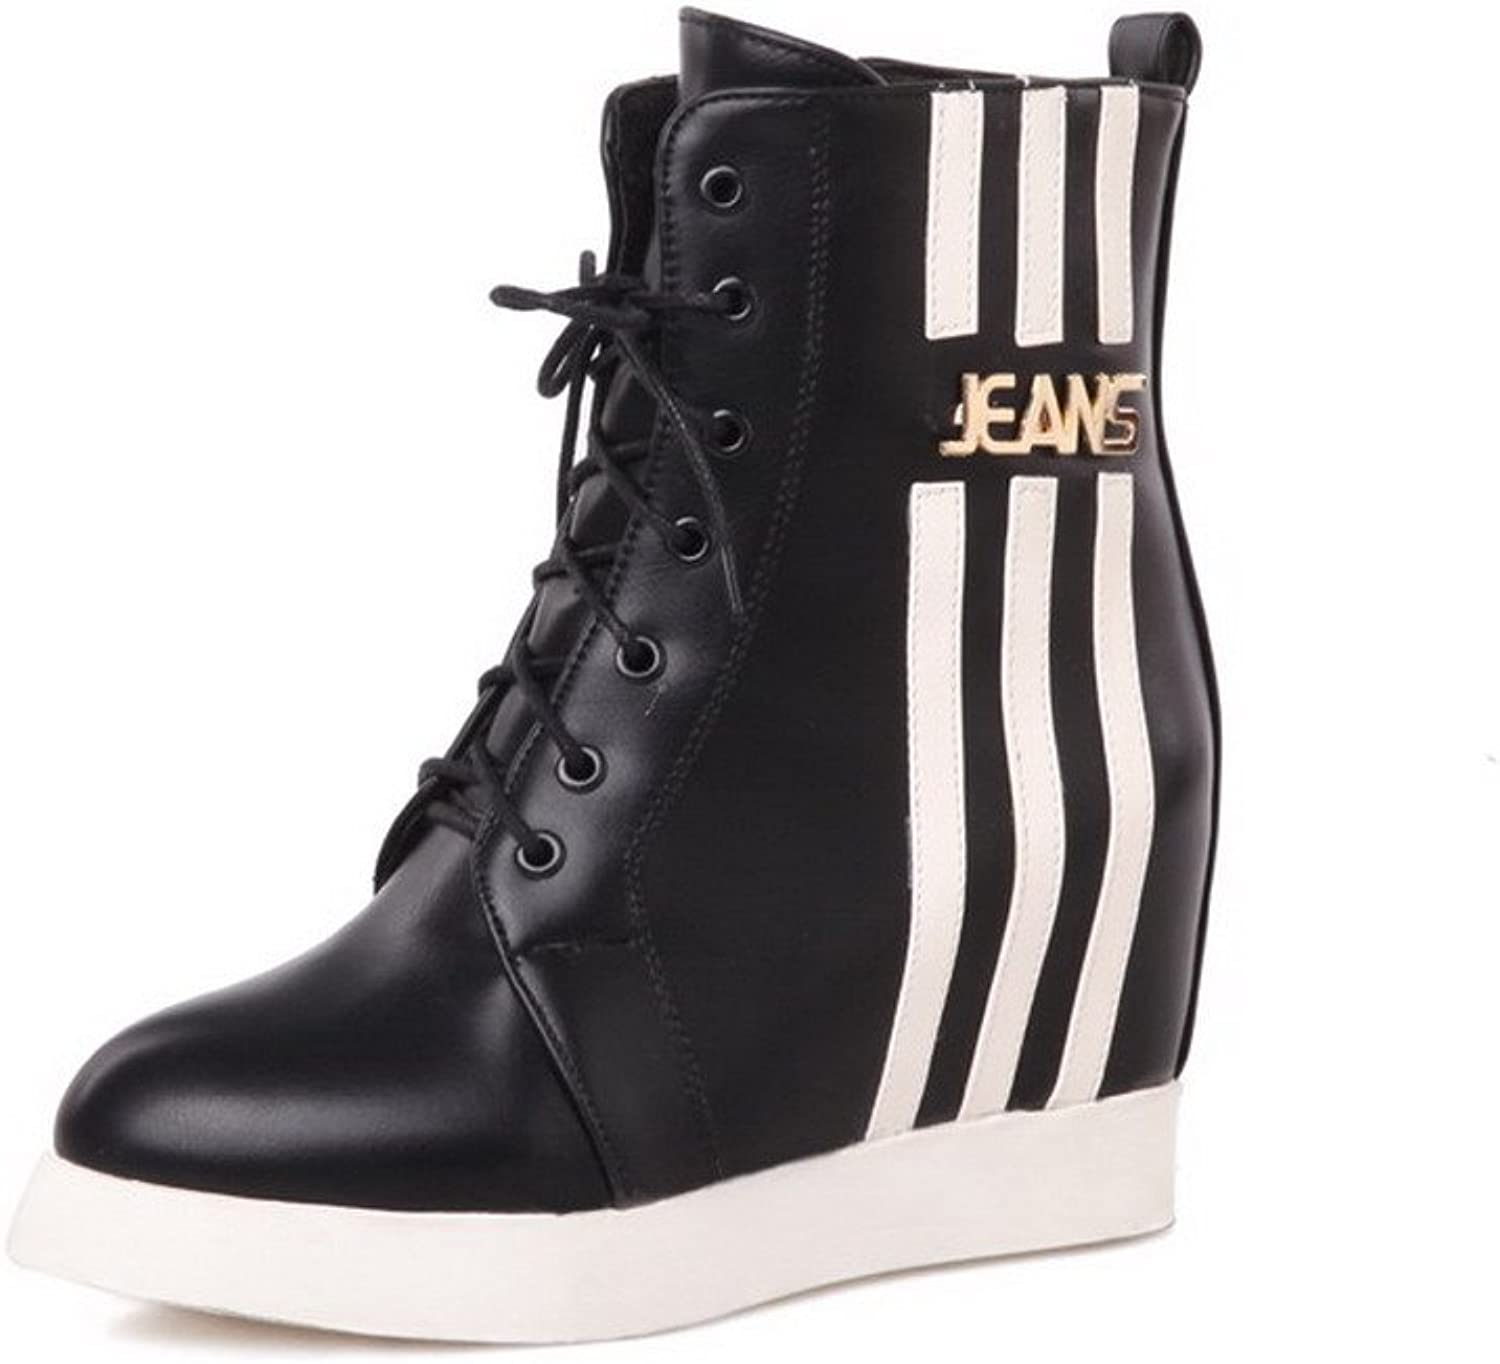 AllhqFashion Women's Round Closed Toe PU Lace-up Low-top Kitten-heels Boots